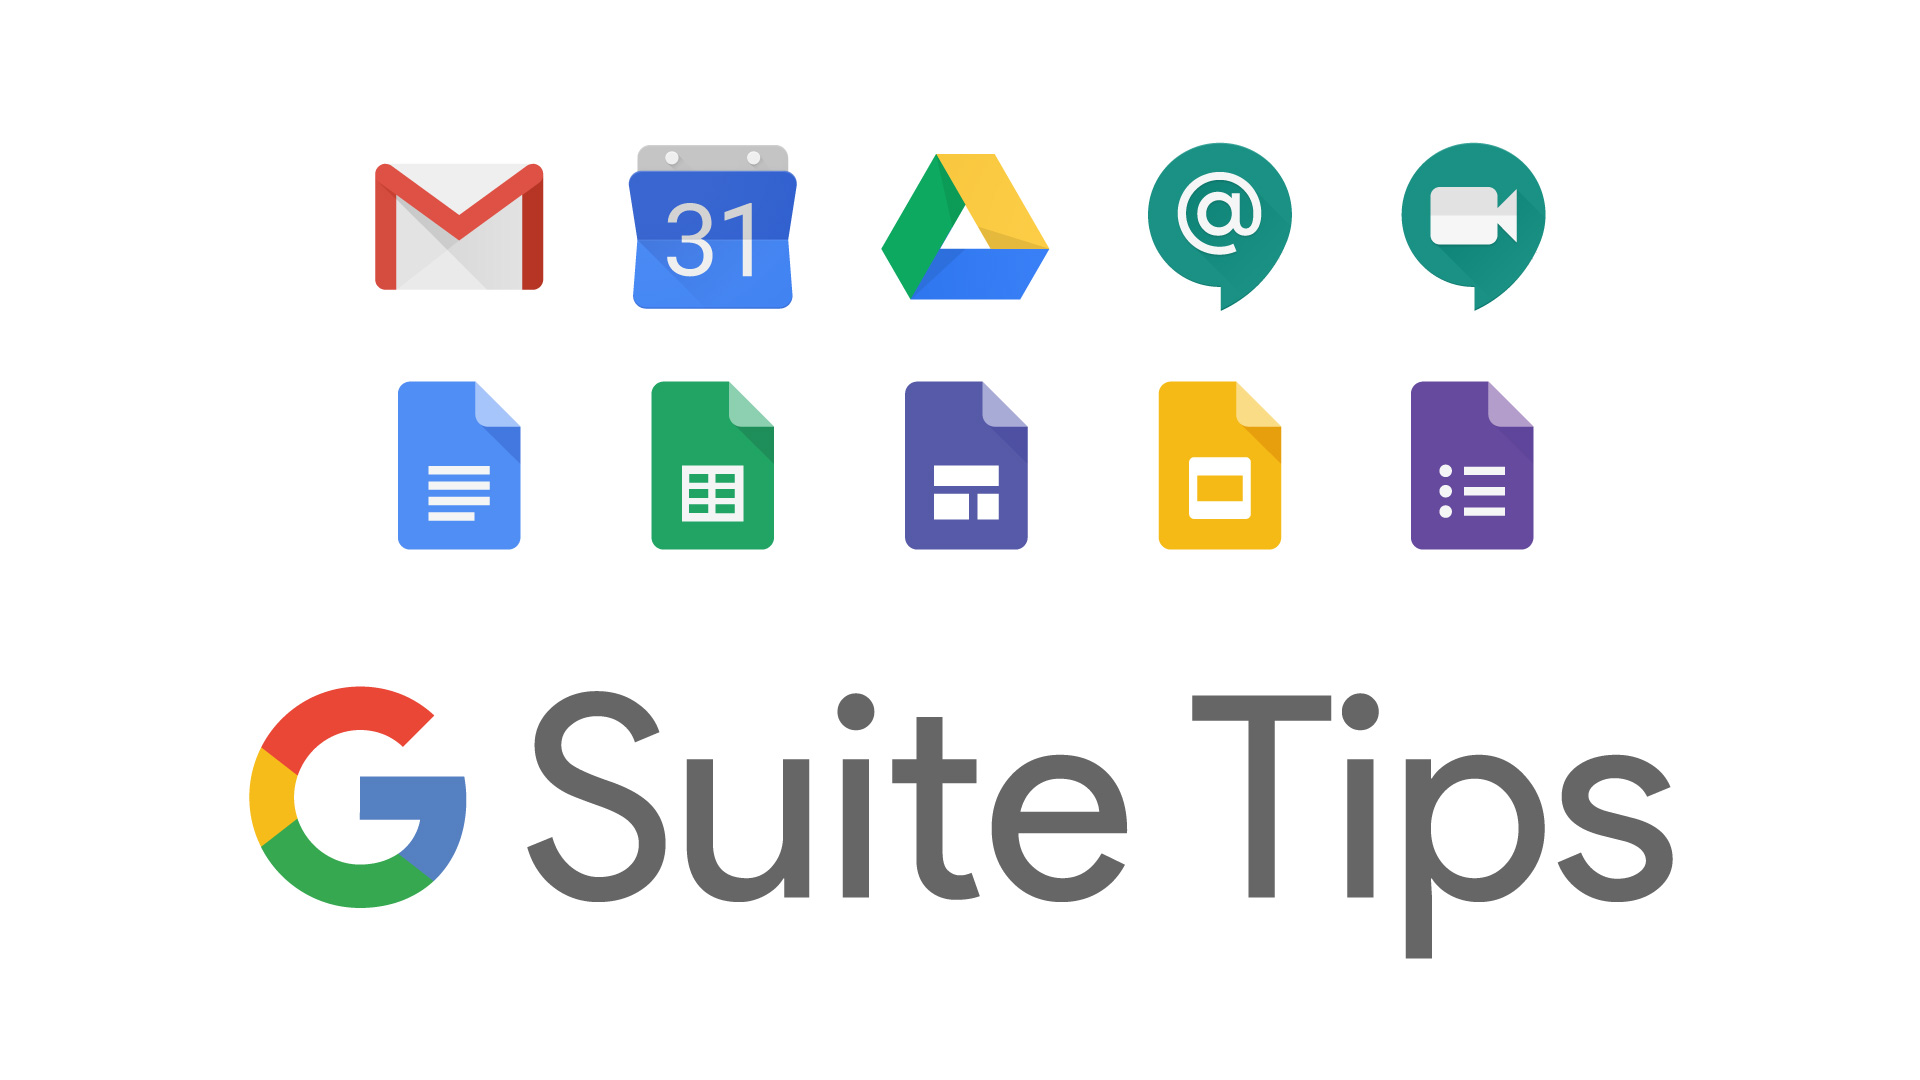 10 G-Suite tips to optimize your inbox